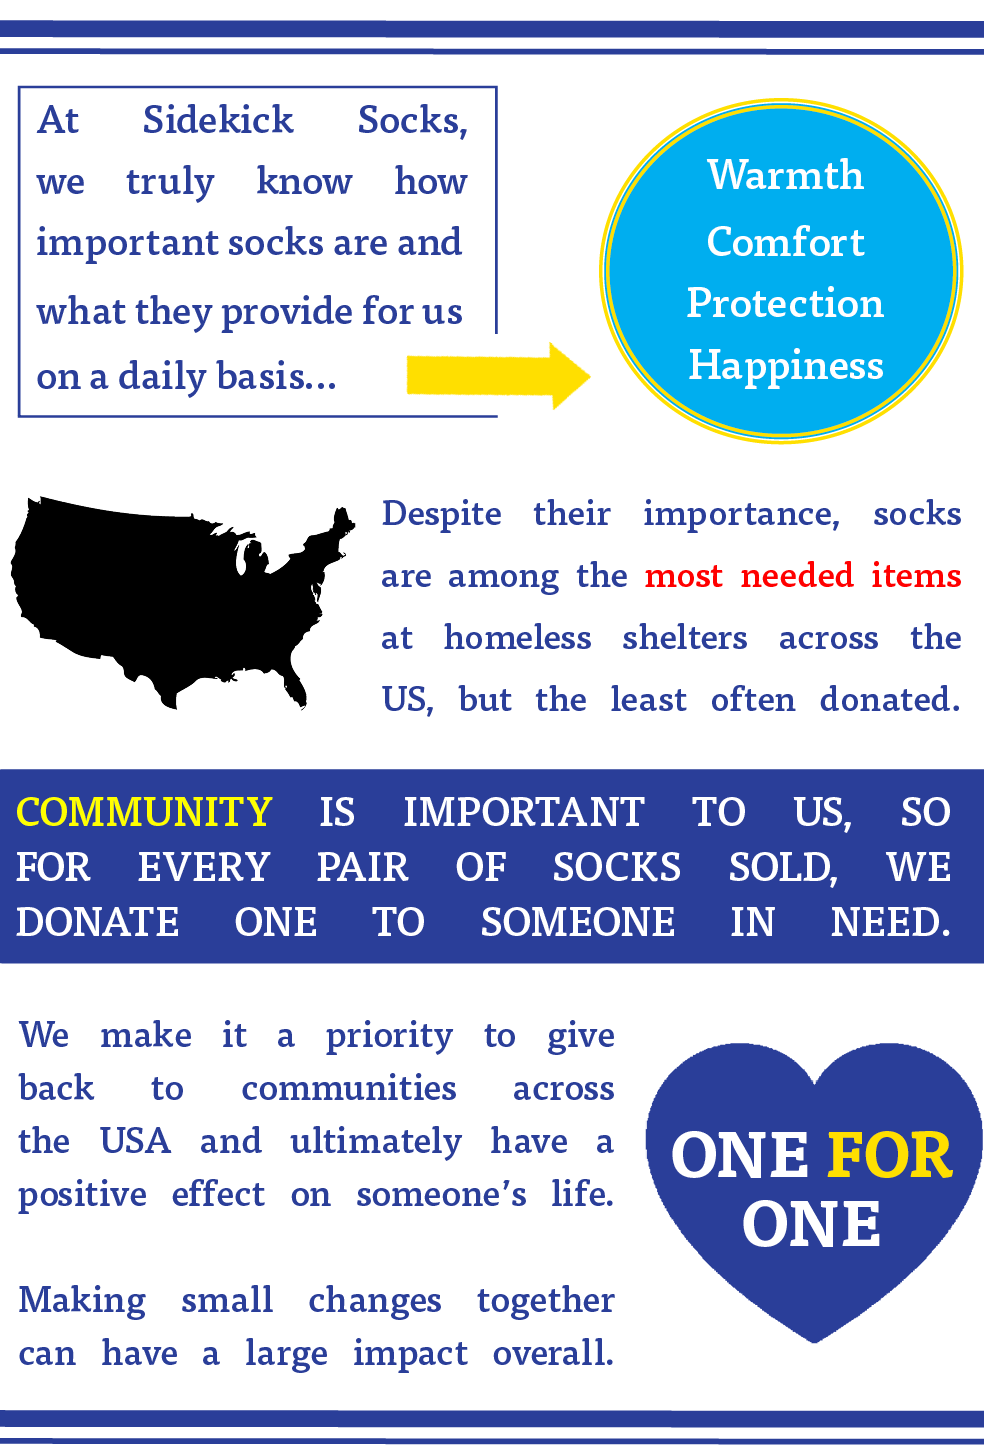 SKS_WebsitePOP_GivingBack_Enlarged_2.png